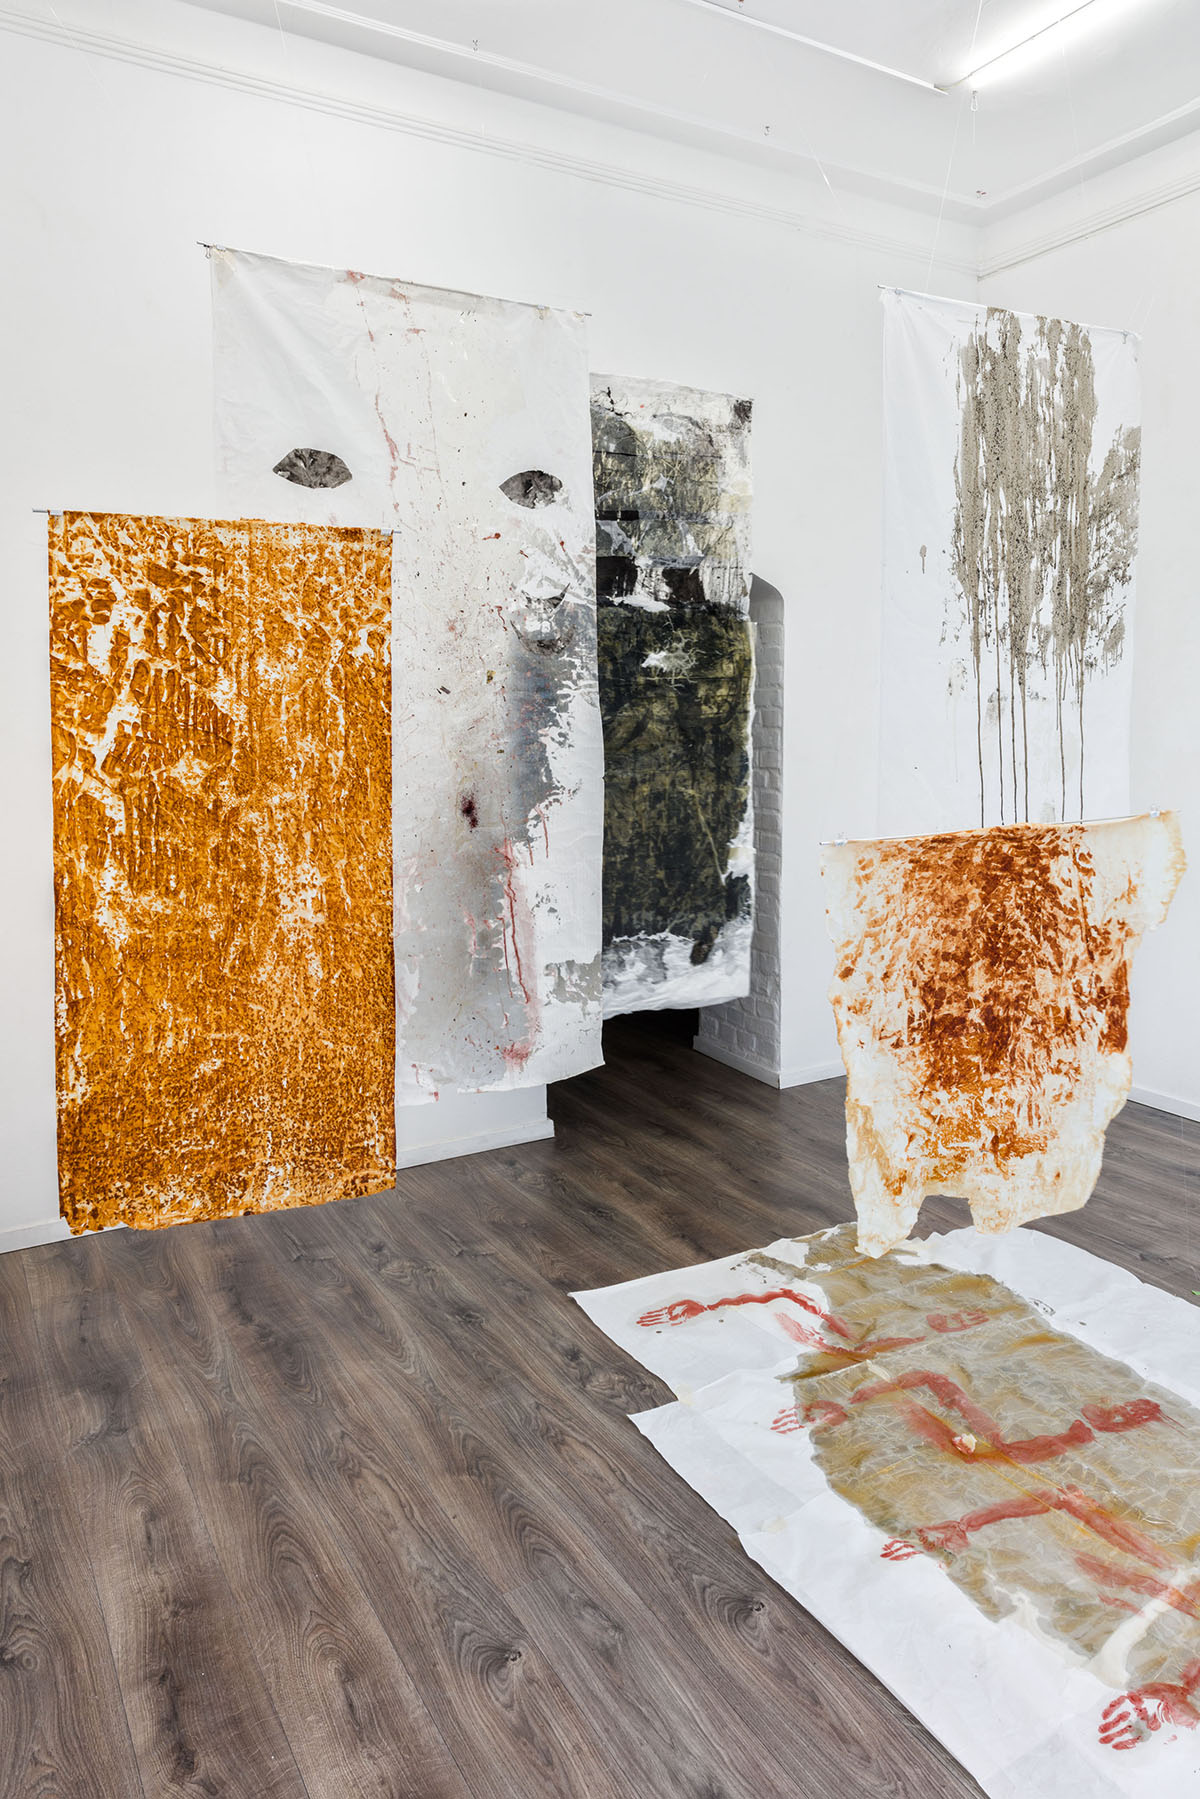 """,,Temple"""", mixed media on japanesse paper, dimensions variable, installation view from group exhibition ,,Changing matters"""" in Galerie Meno Parkas in Düsseldorf, 2021, curated by Marius Hoppe (foto credits: Johannes Bendzulla)"""